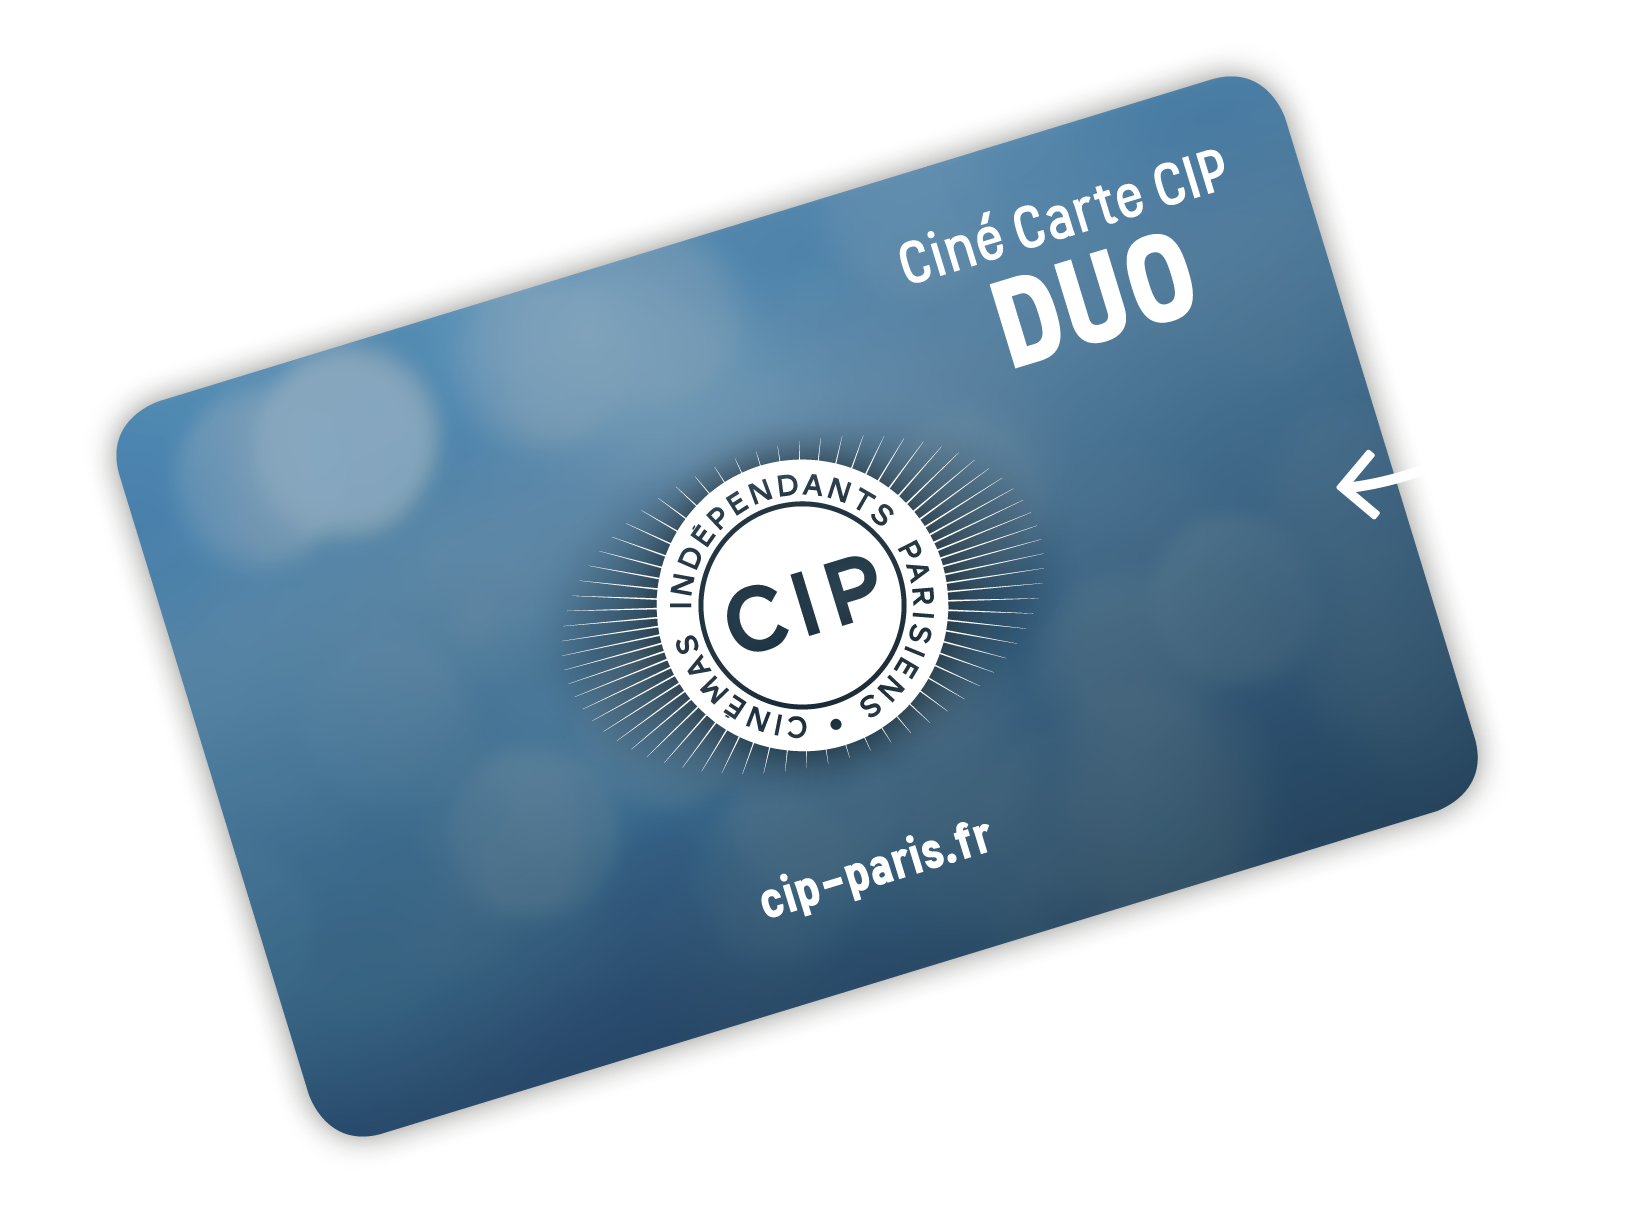 Cine carte cip duo